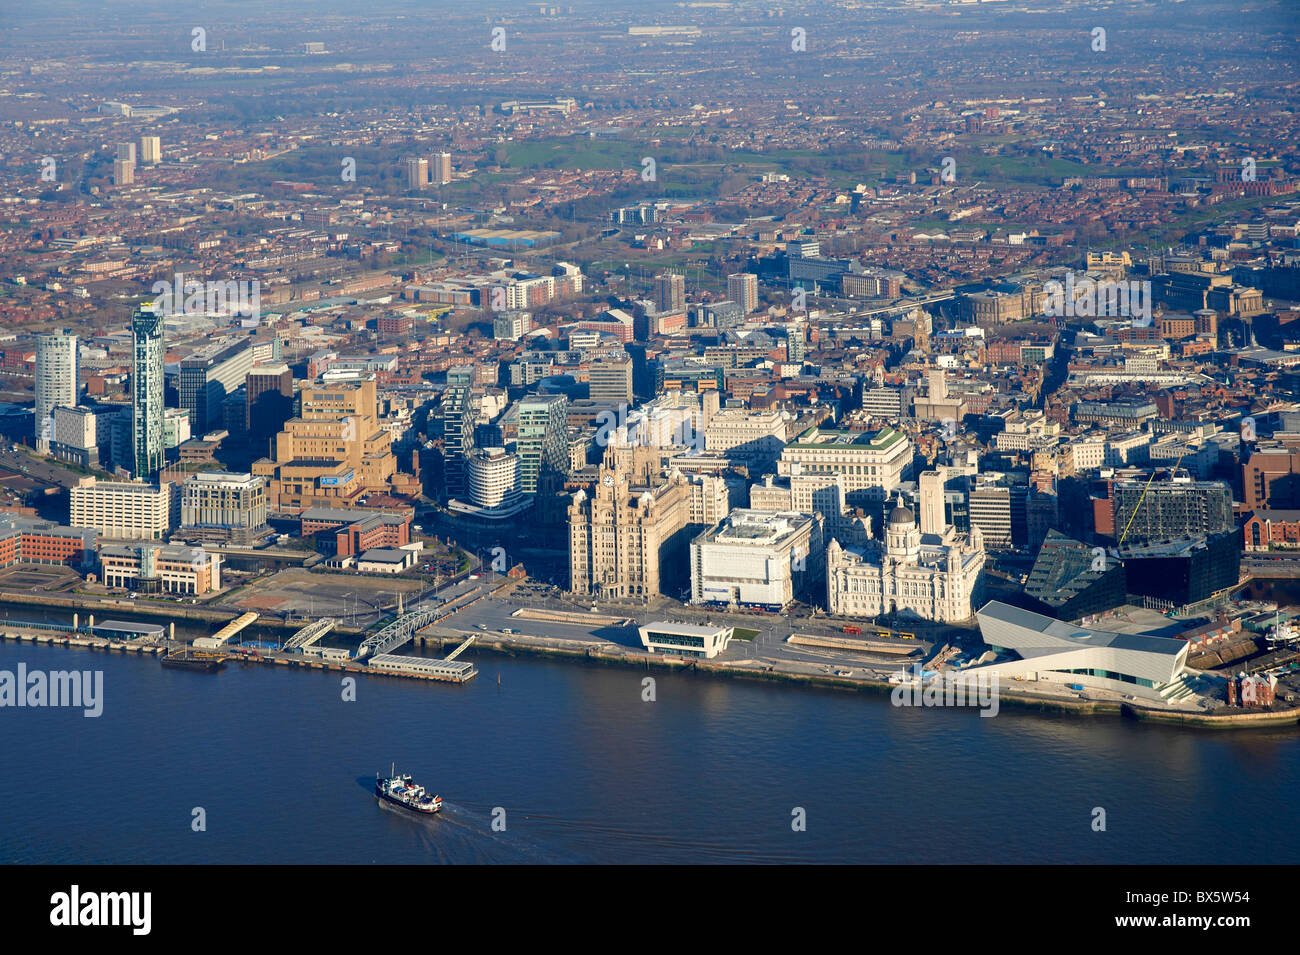 Liverpool Waterfront and the river Mersey, from the air, North West England, with the Mersey Ferry arriving - Stock Image